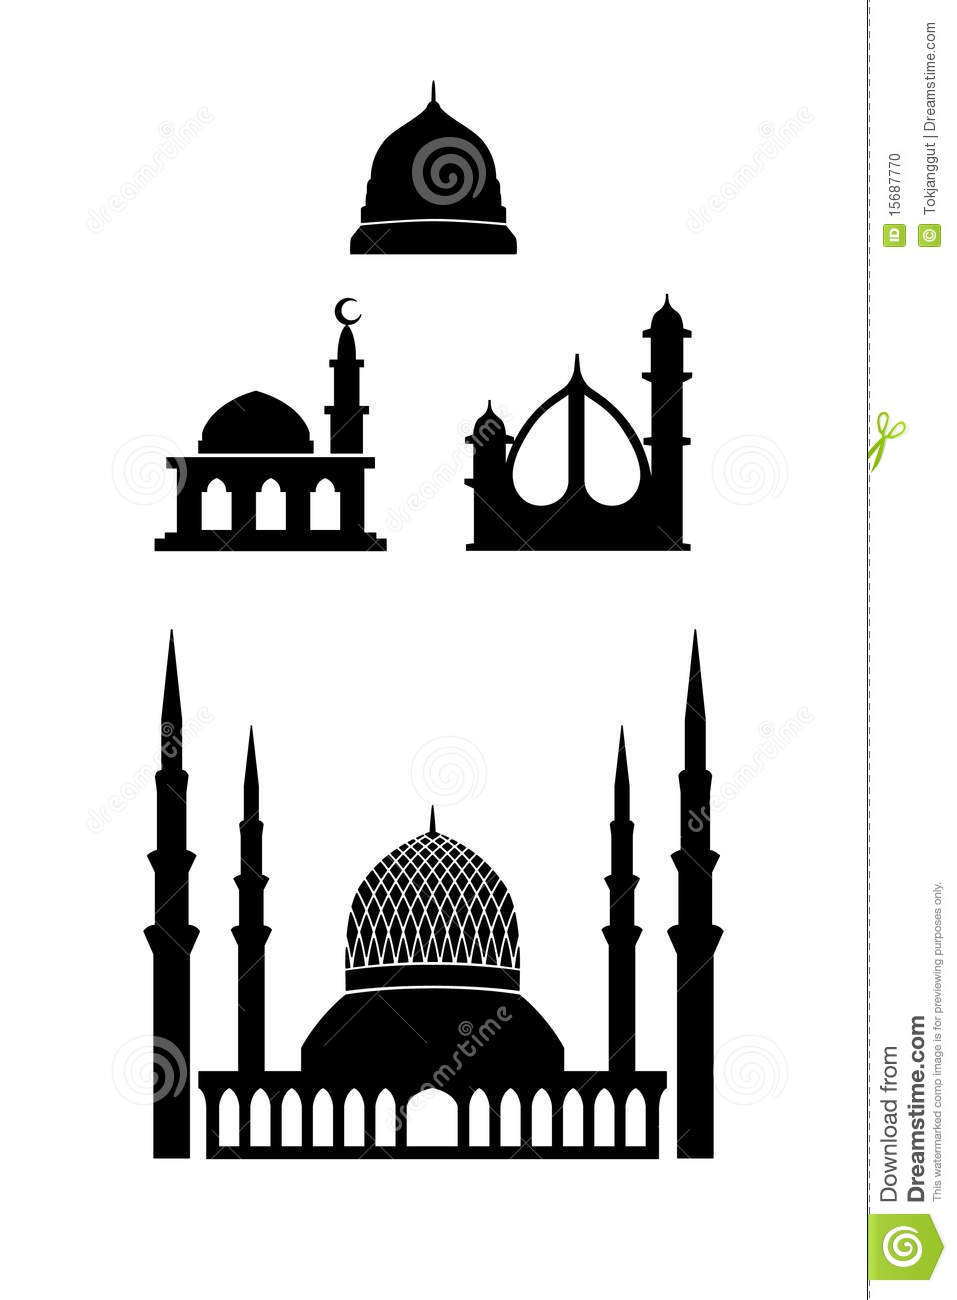 Shah Alam Mosque Icon Stock Photo - Image: 15687770